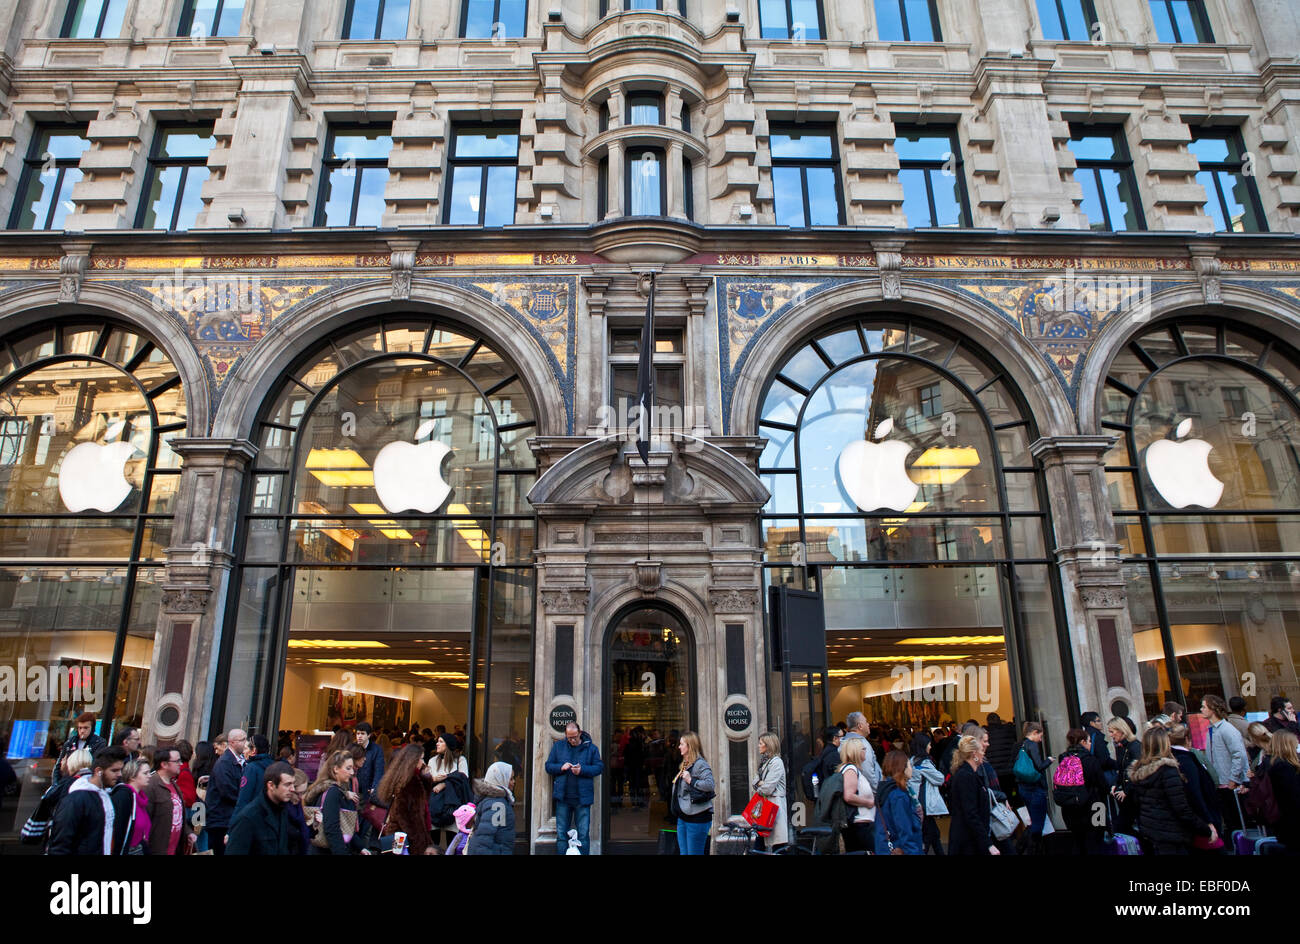 LONDON, UK - NOVEMBER 29TH 2014: Crowds of shoppers flood past the Apple store on Regent Street in London, on 29th Stock Photo